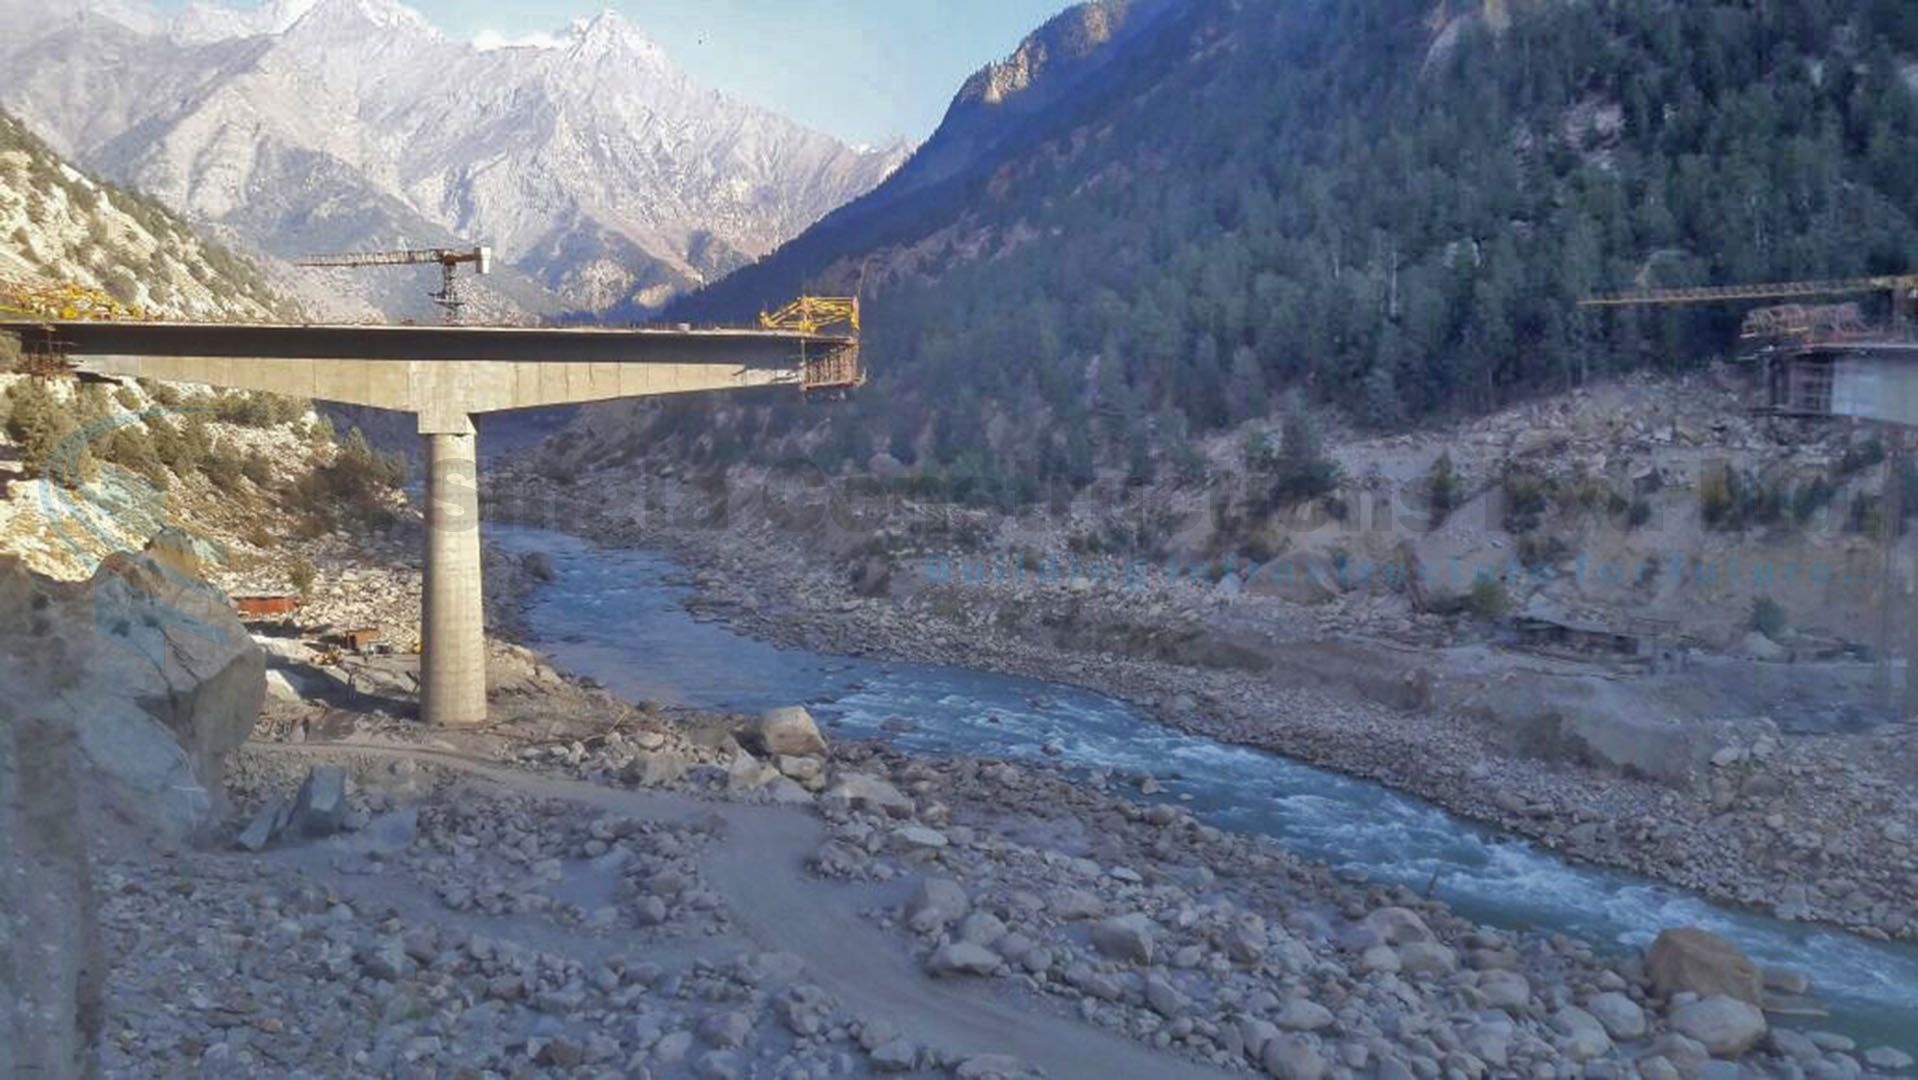 A Major Permanent AKPA Bridge with balance cantilever Superstructure over river Satluj in Himachal Pradesh